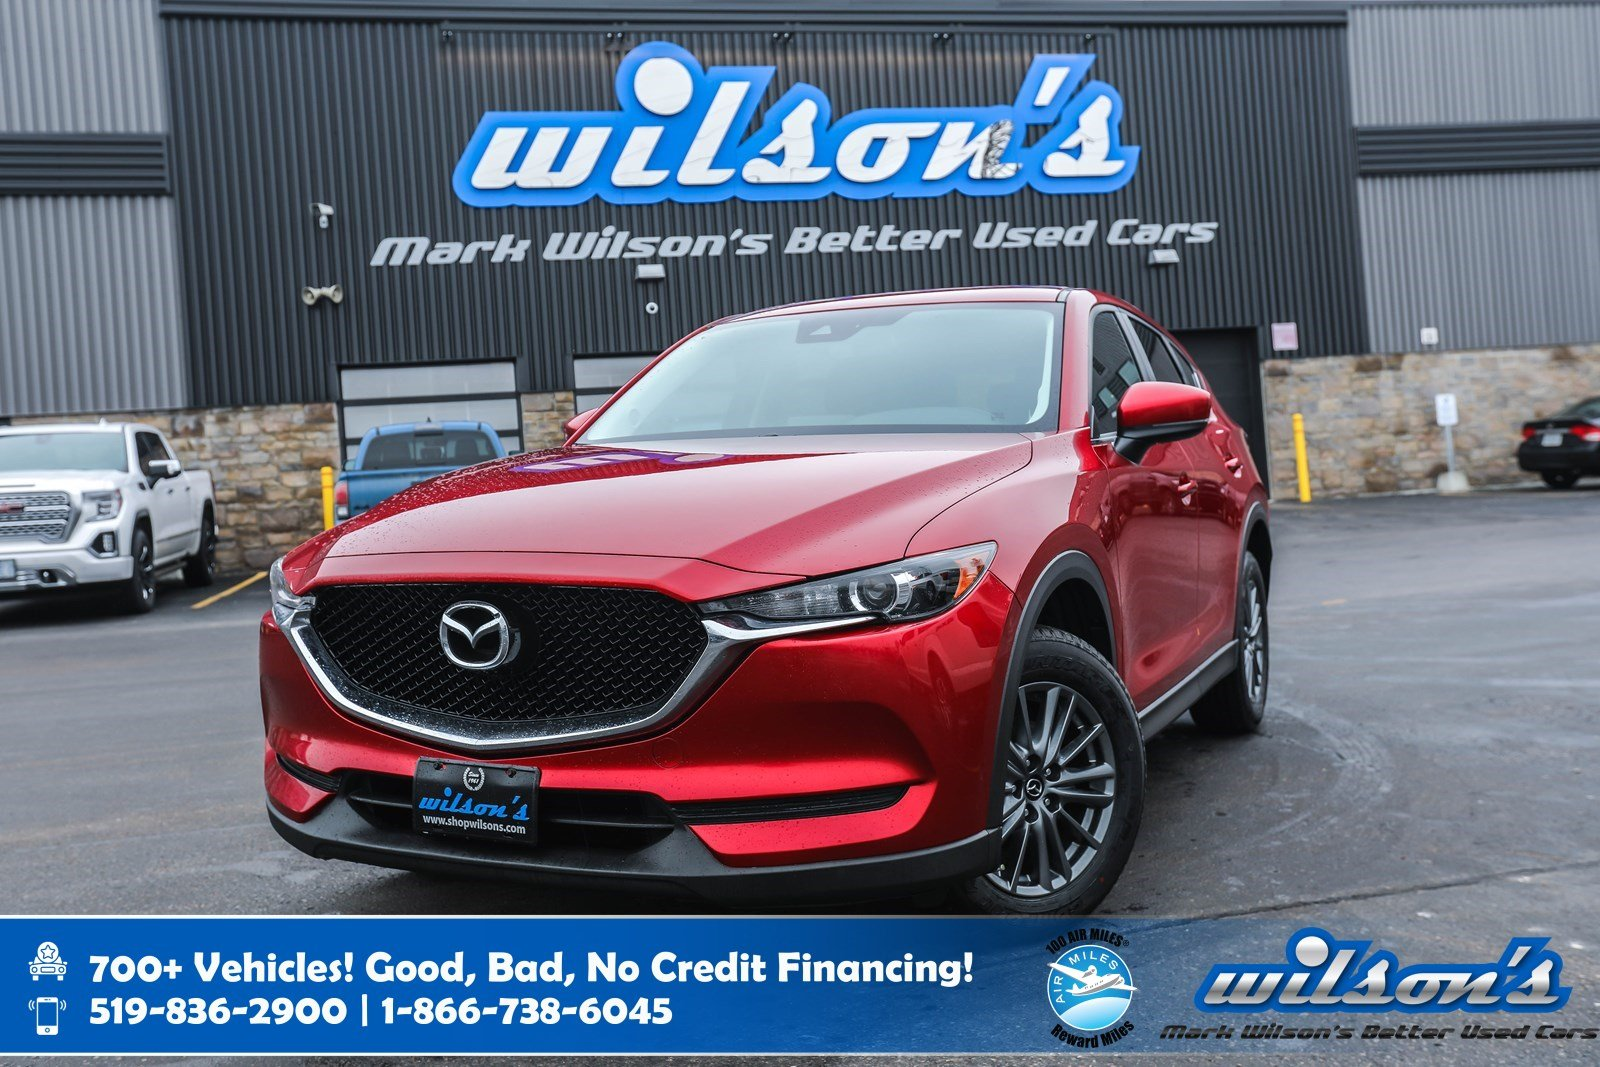 Certified Pre-Owned 2017 Mazda CX-5 GS, Leather Trim, Rear Camera, New Tires, Bluetooth, Heated Seats + Steering, Alloys and more!